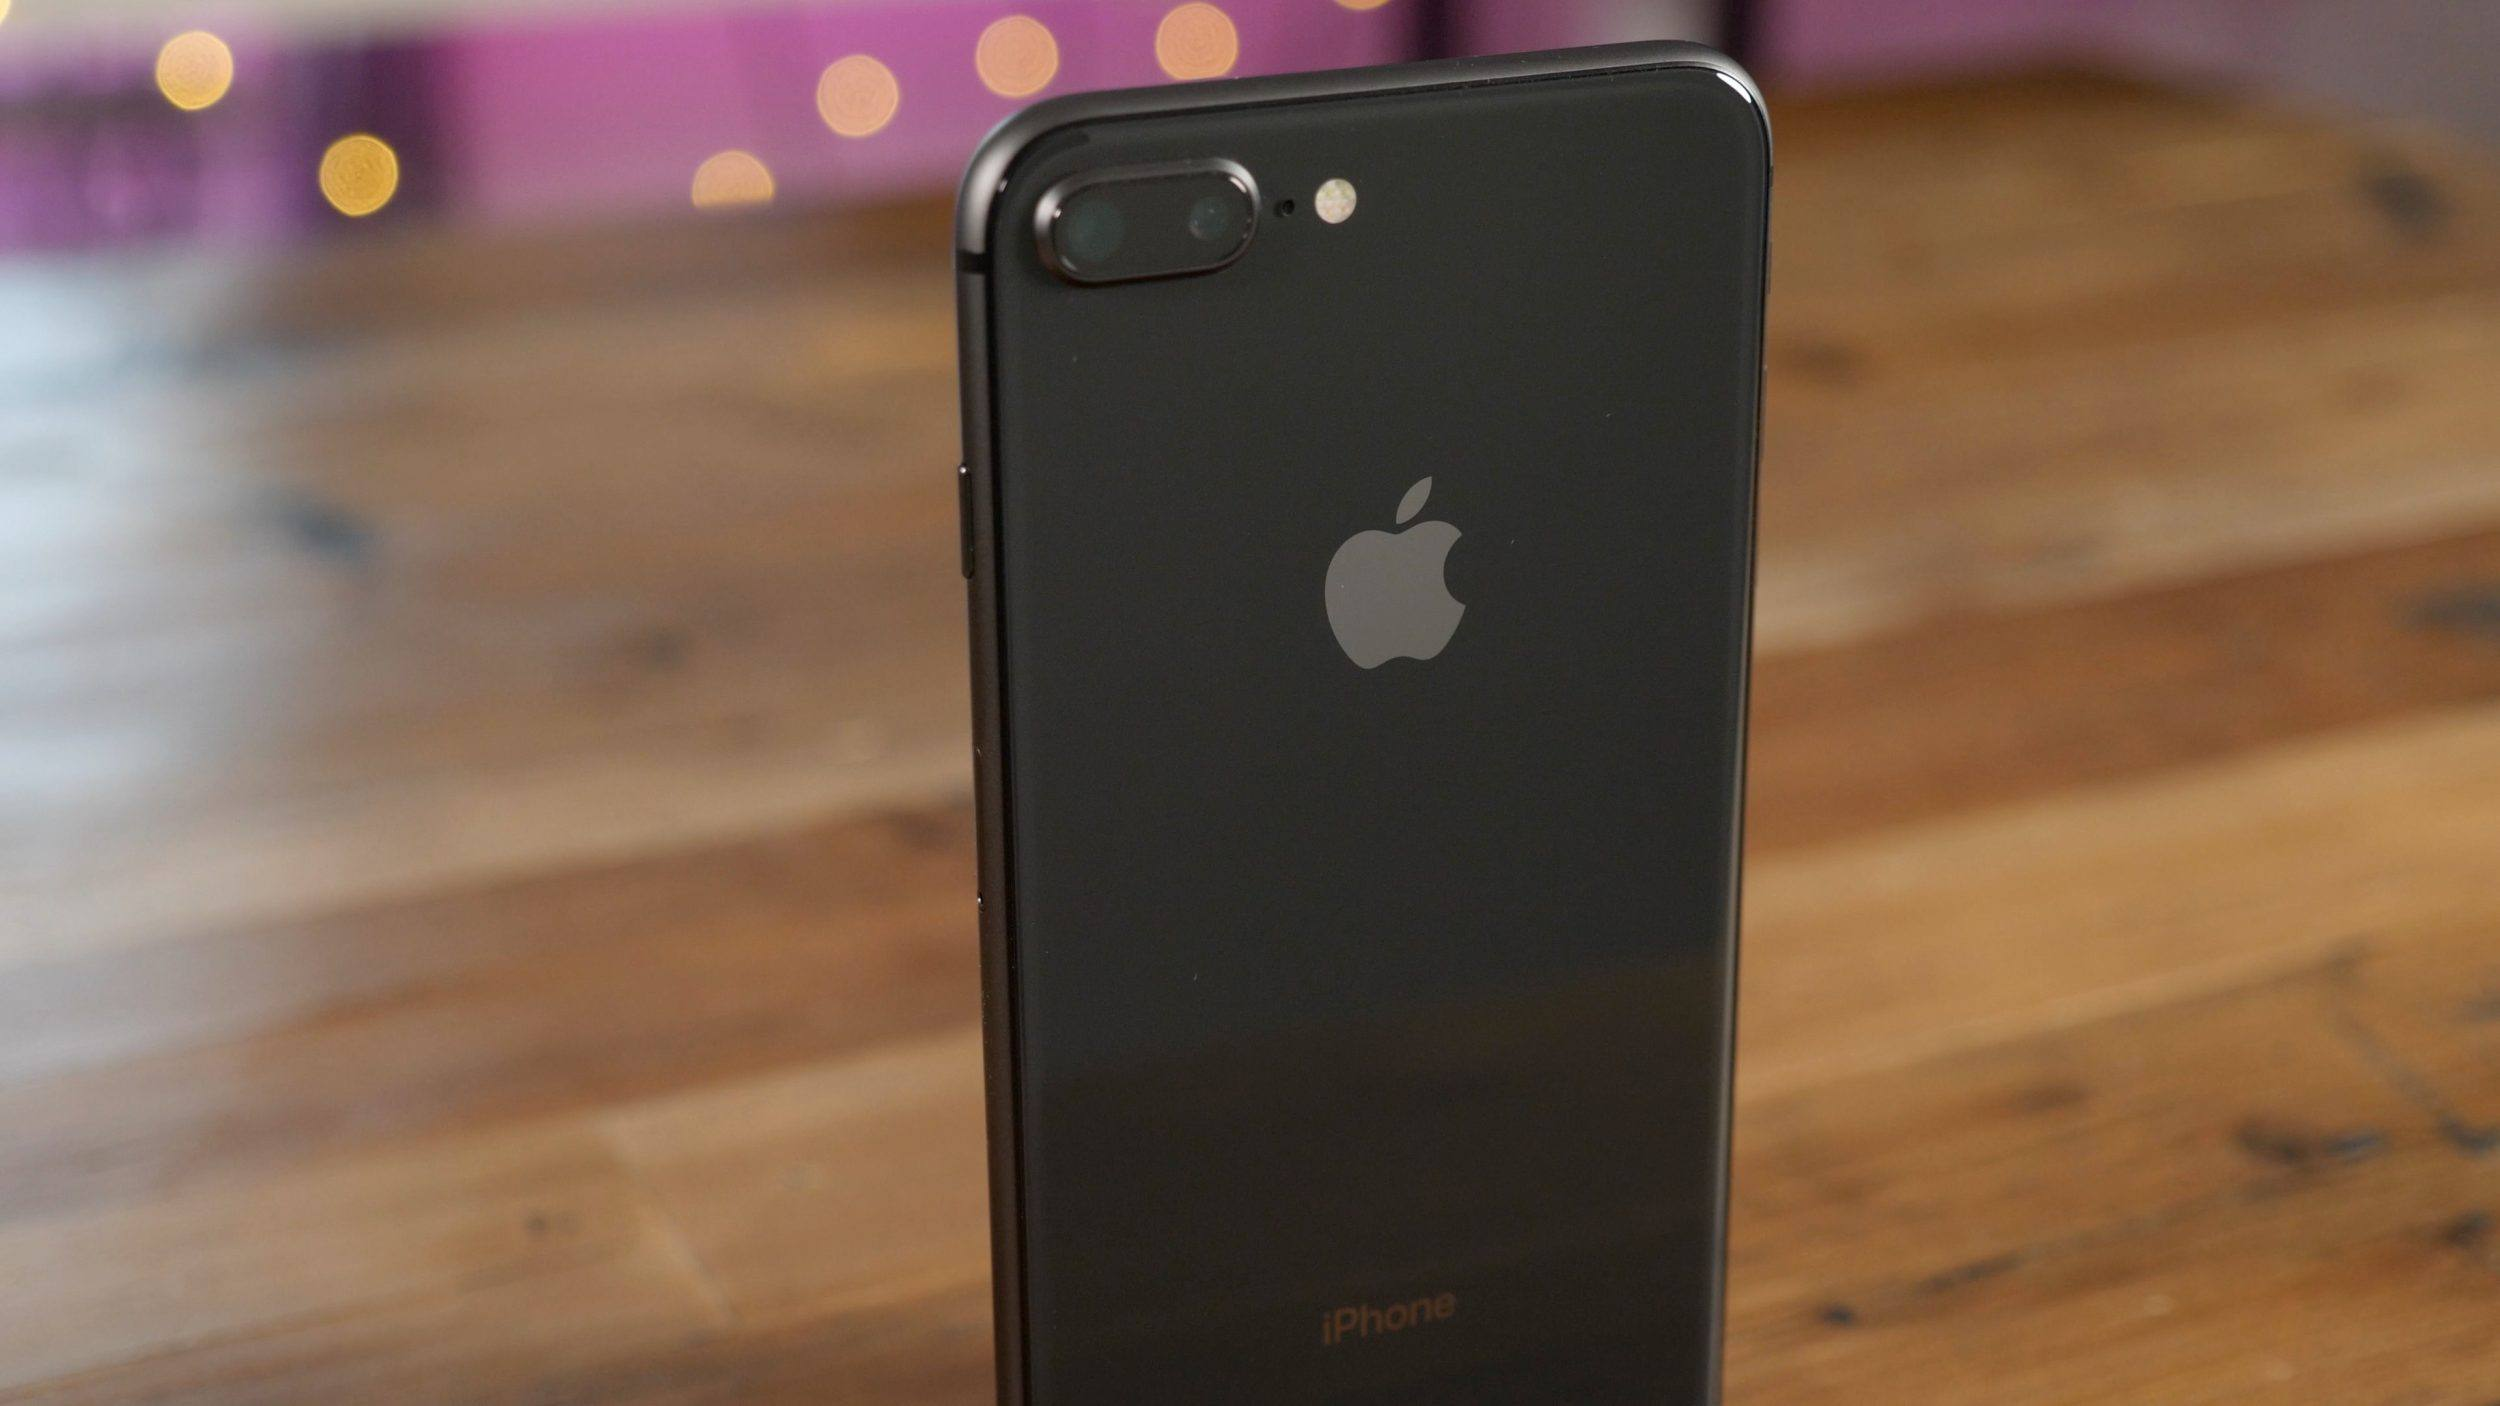 iPhone-8-Plus-Which-iPhone-Should-I-Buy